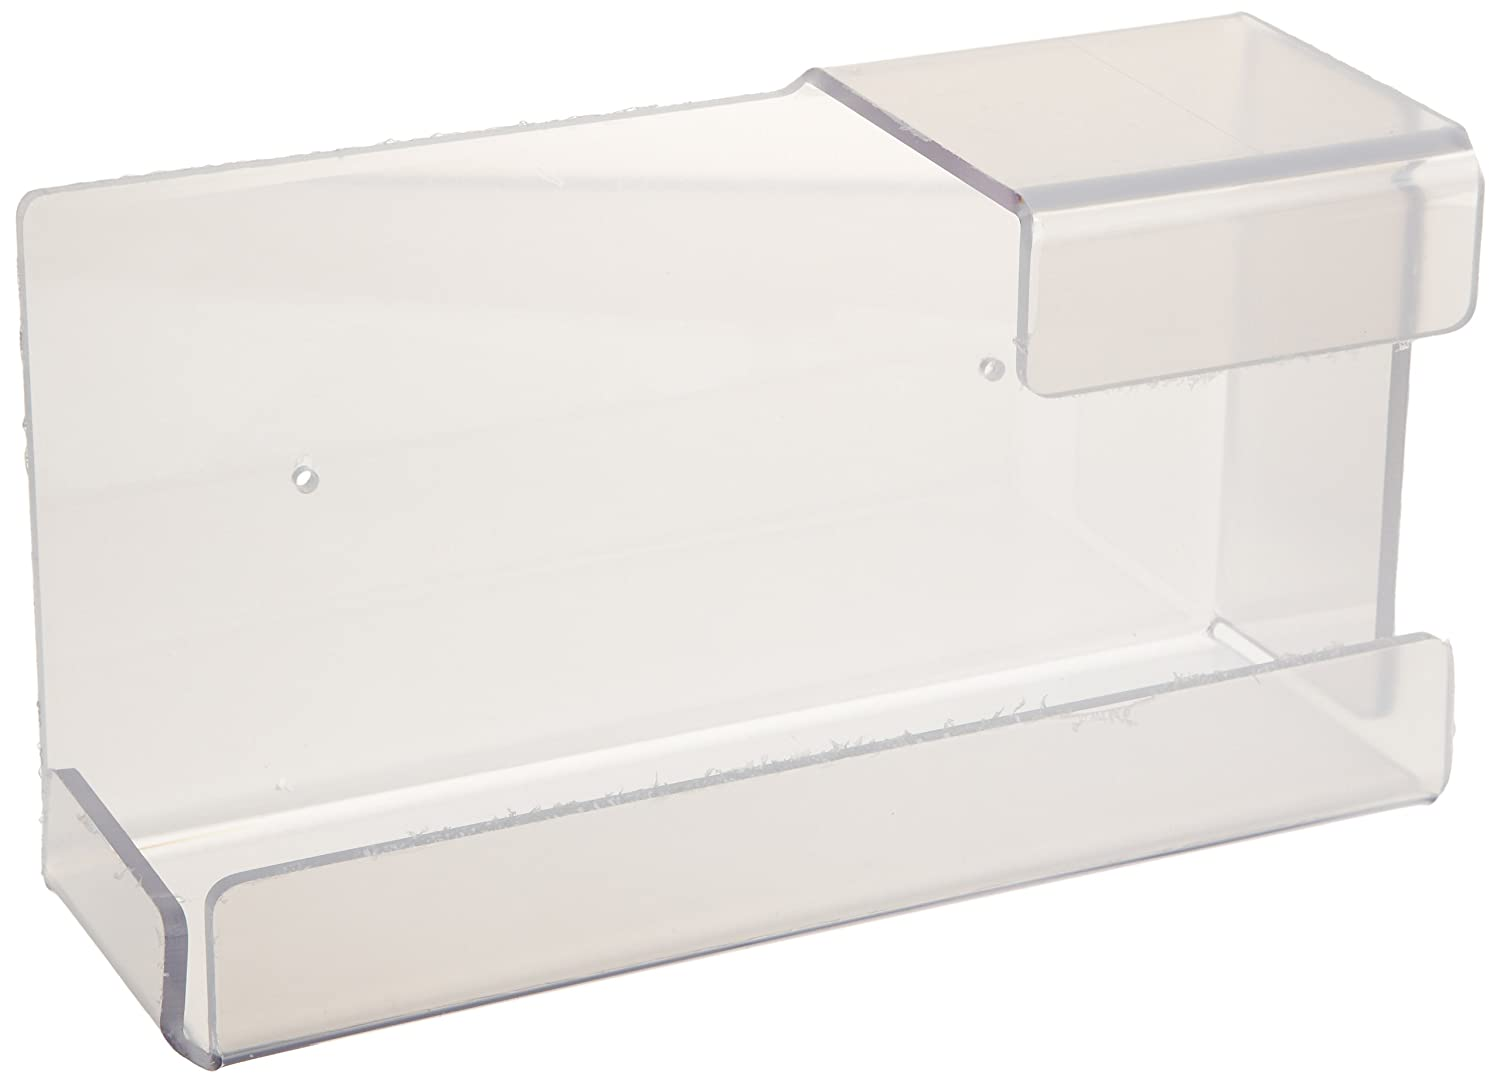 ZING 7220 Eco Glove Dispenser, Single Box, Universal Mount, Clear, 10.5Lx6Wx4H, Recycled Plastic